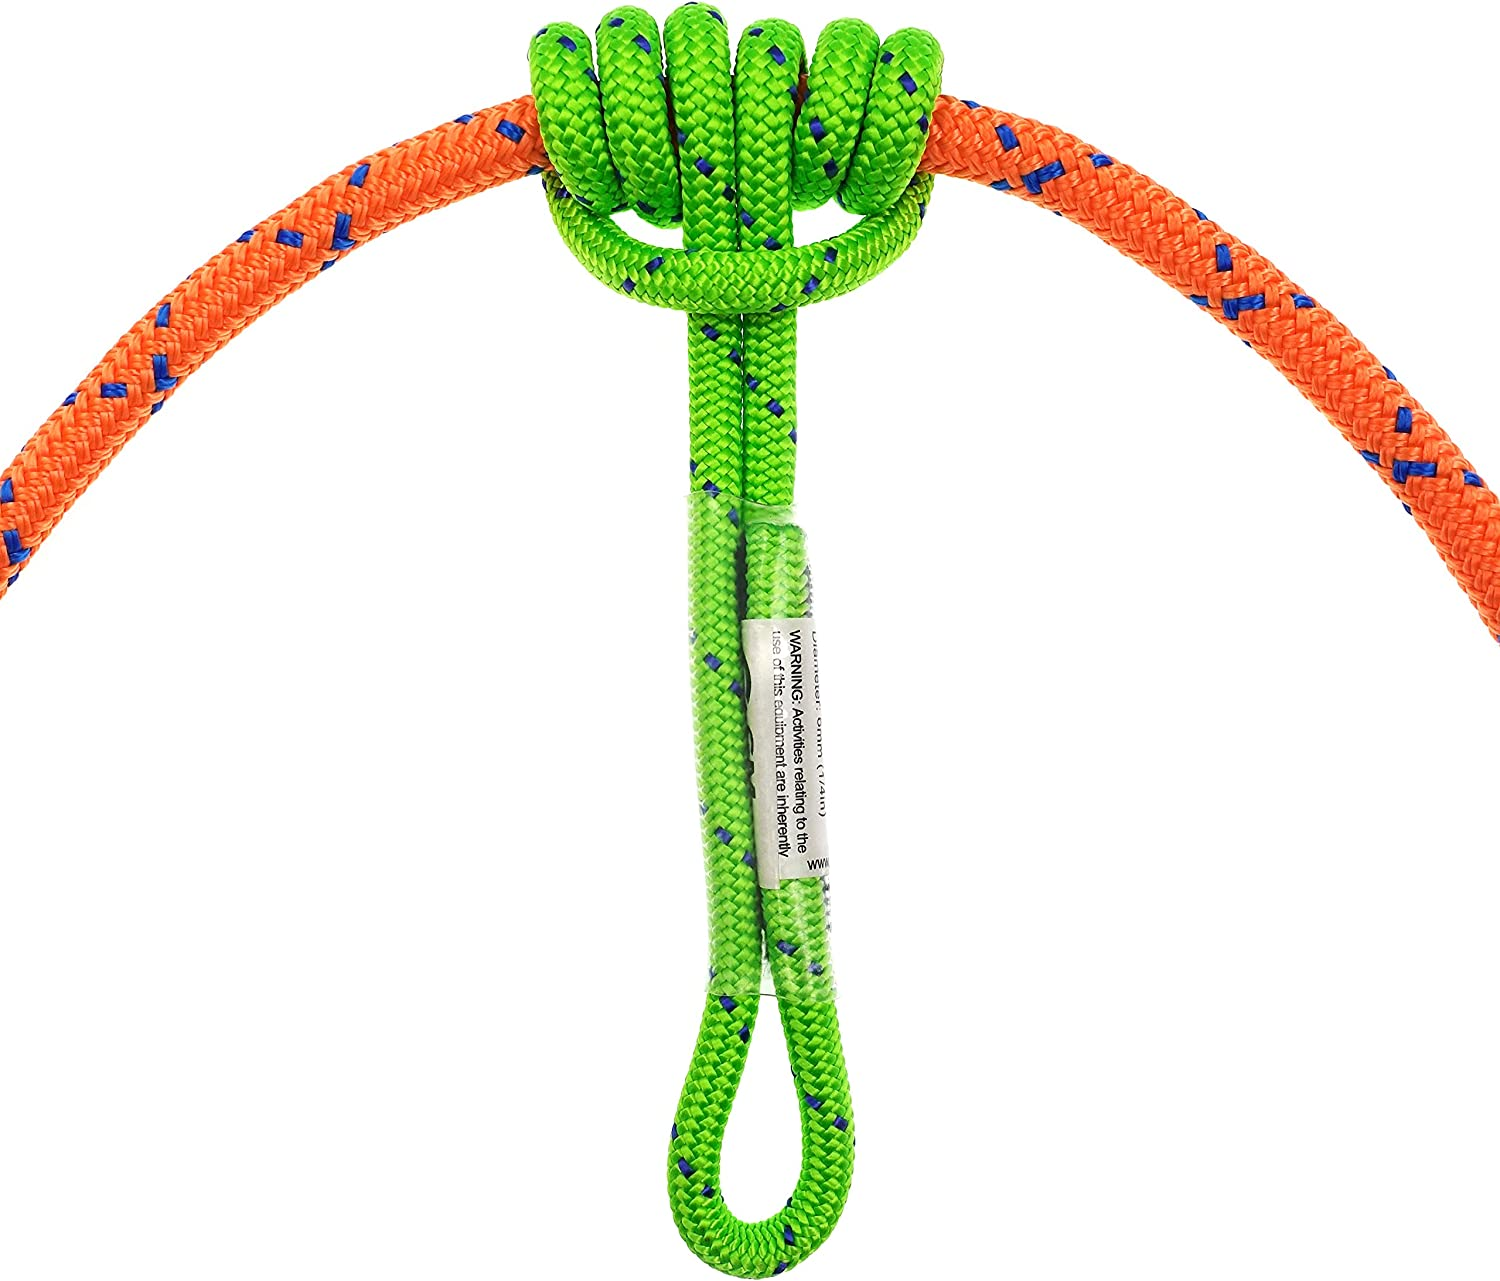 GM CLIMBING 6mm Prusik Cord Pre-Sewn 12in Prusik Loop | 48in Purcell Prusik for Climbing Arborist Rescue Mountaineering General Outdoor Use : Sports & Outdoors